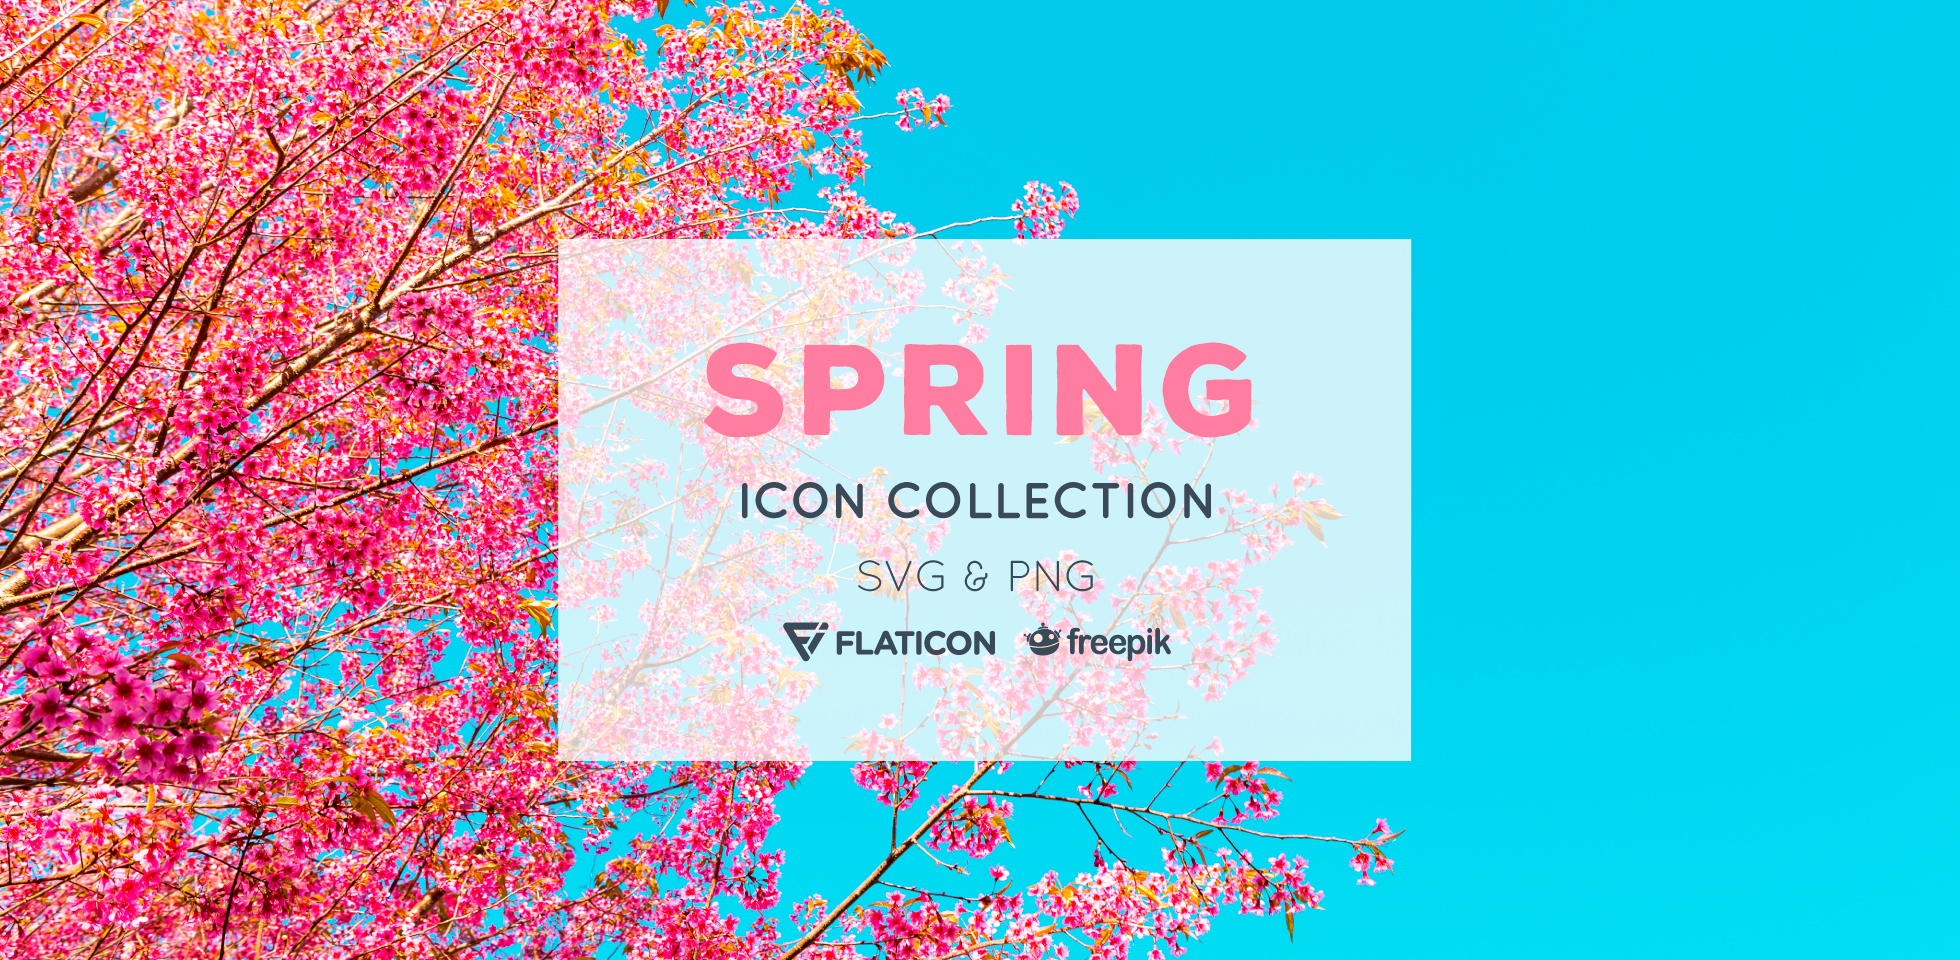 Free Download: Spring Icon Collection